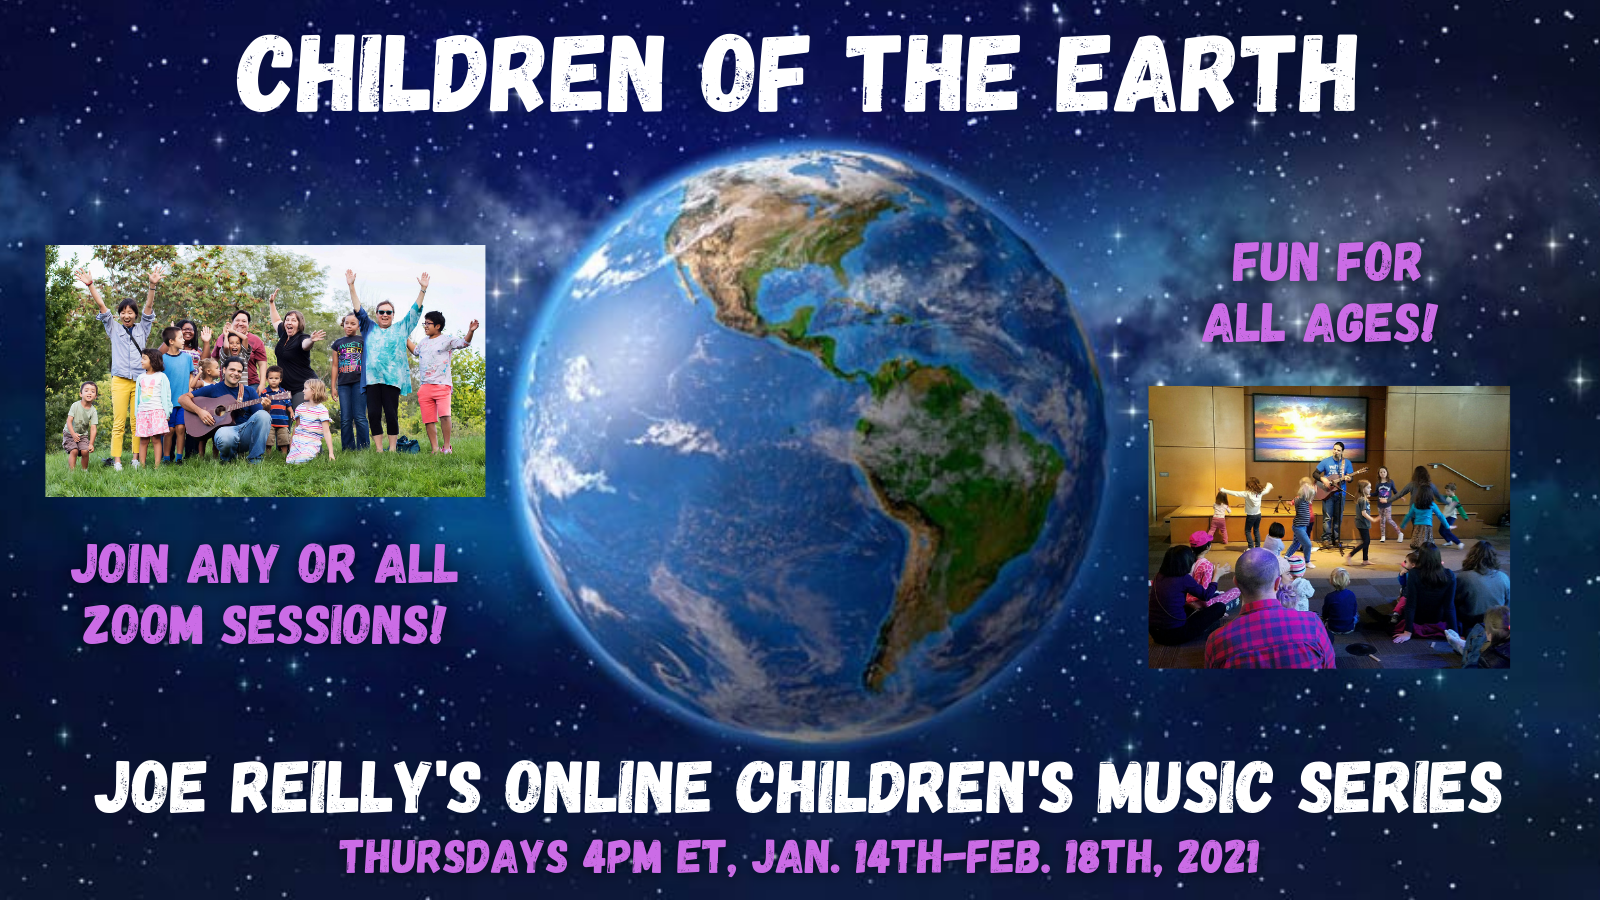 Children of the Earth: Joe Reilly's Online Children's Music Series